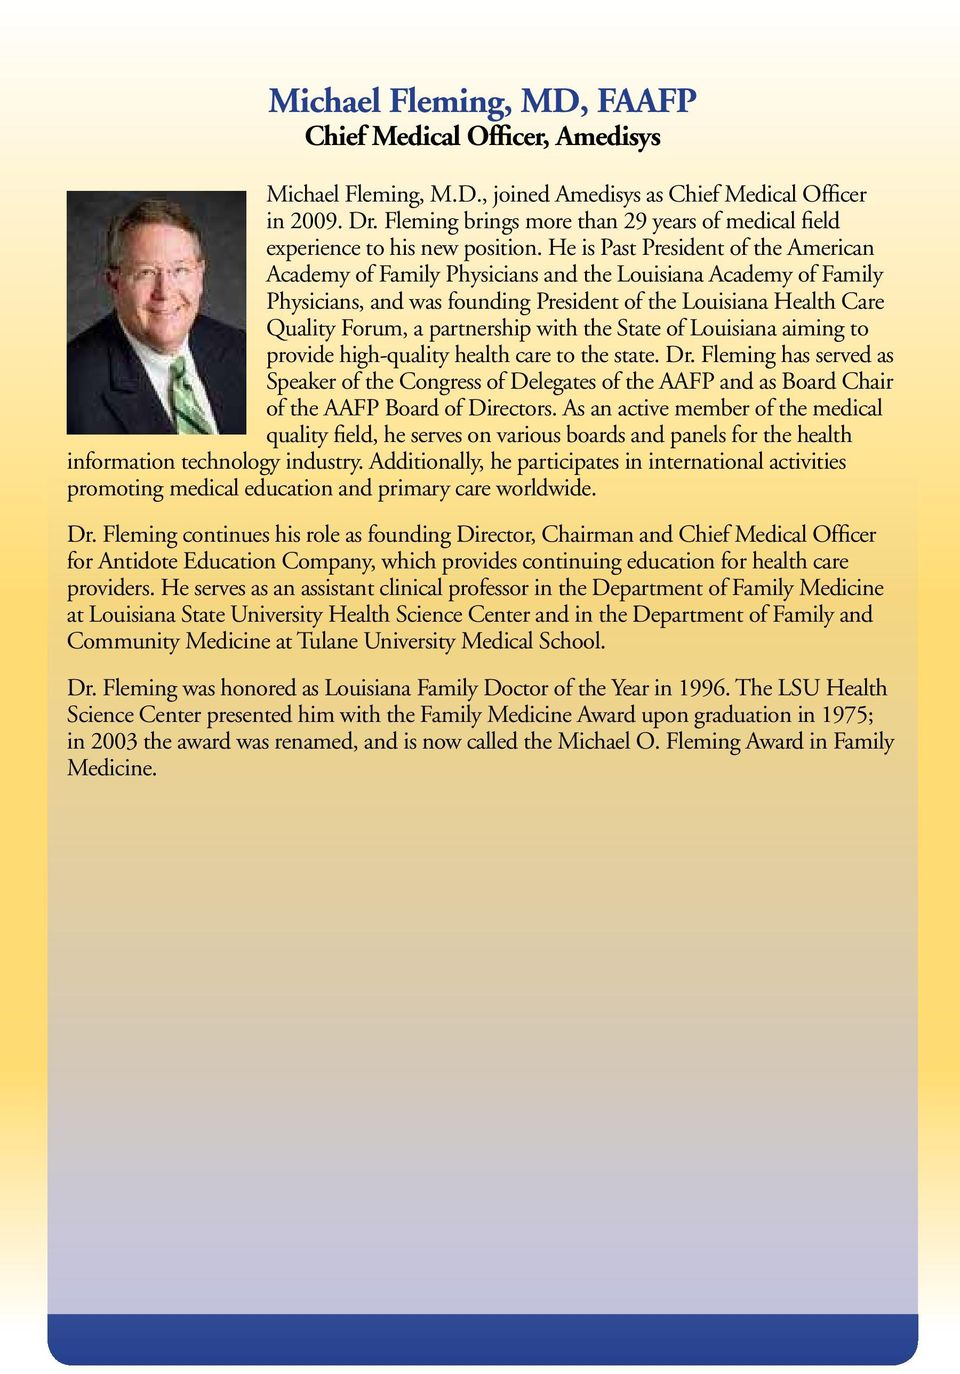 He is Past President of the American Academy of Family Physicians and the Louisiana Academy of Family Physicians, and was founding President of the Louisiana Health Care Quality Forum, a partnership